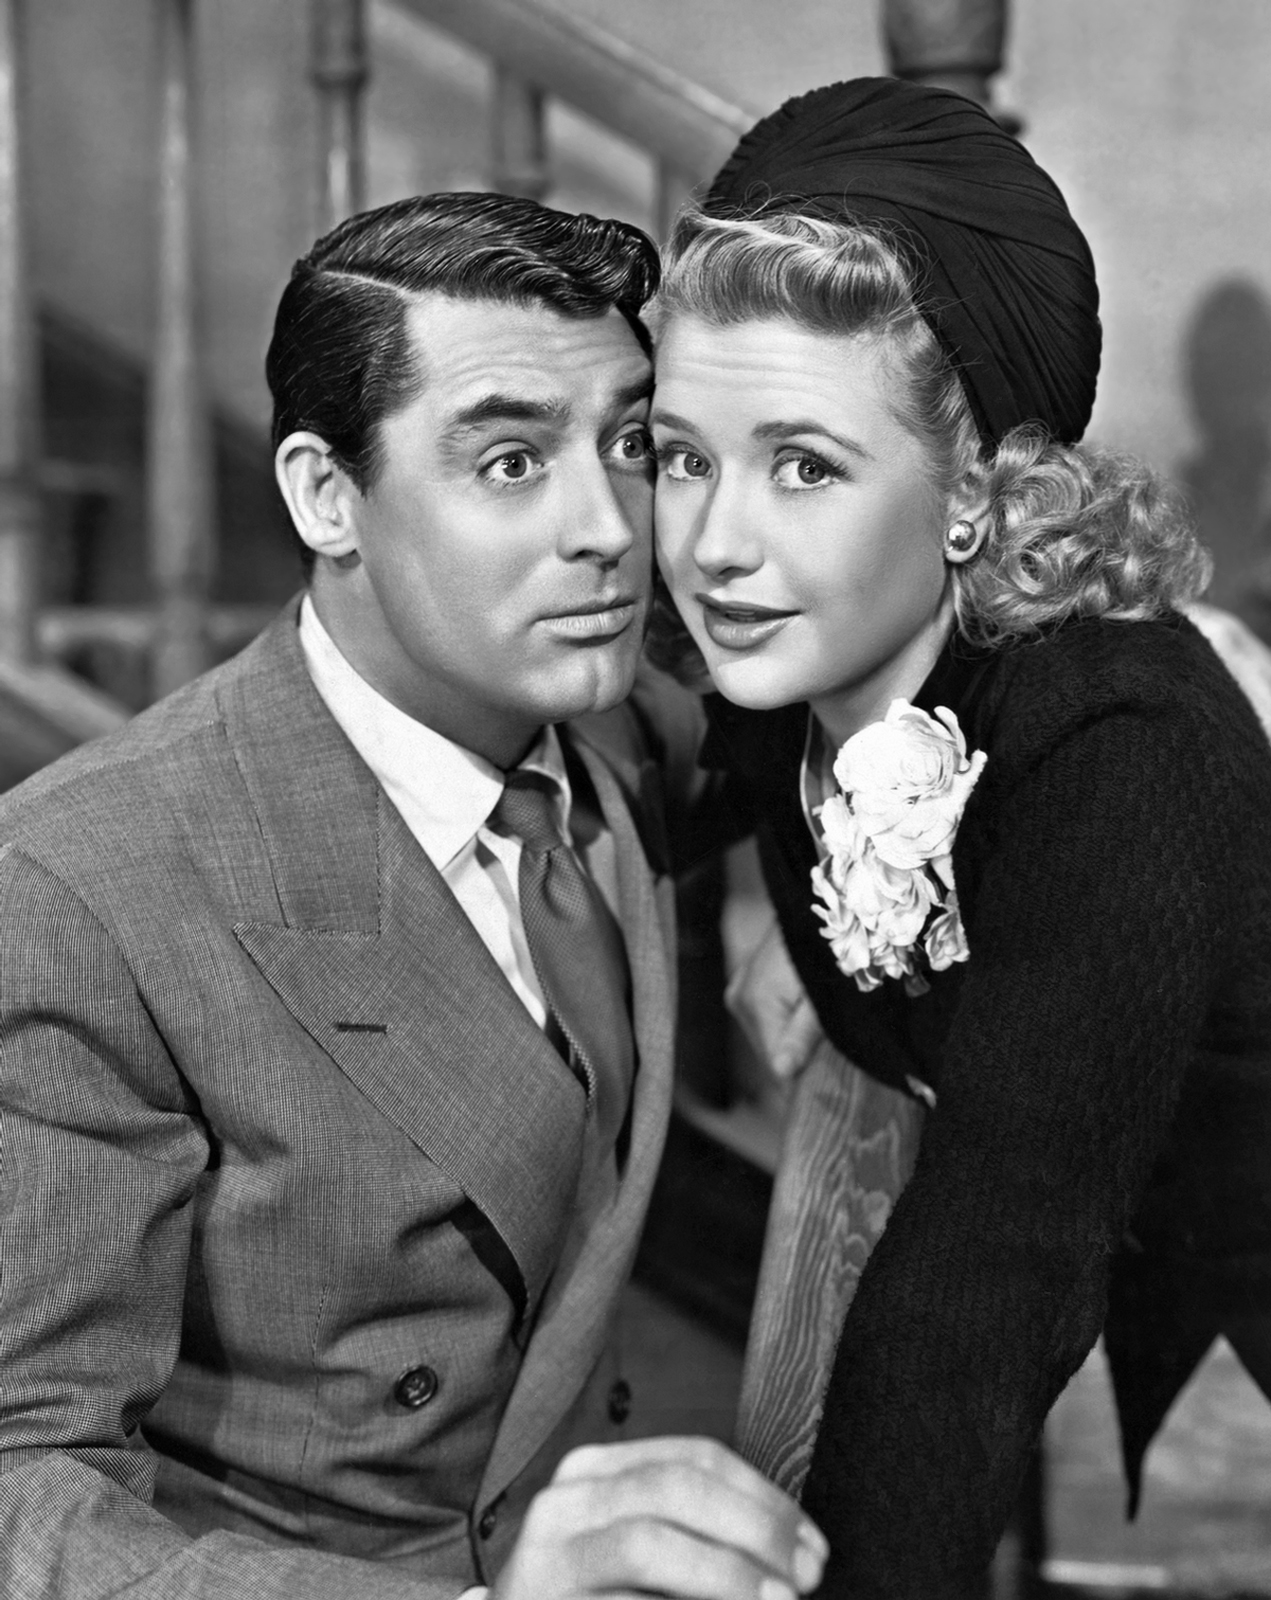 a review of the movie arsenic and old lane Arsenic & old lace -- ivoryton autumn sonata  pianist of willesden lane music theater of connecticut  review of hso's broadway concert.